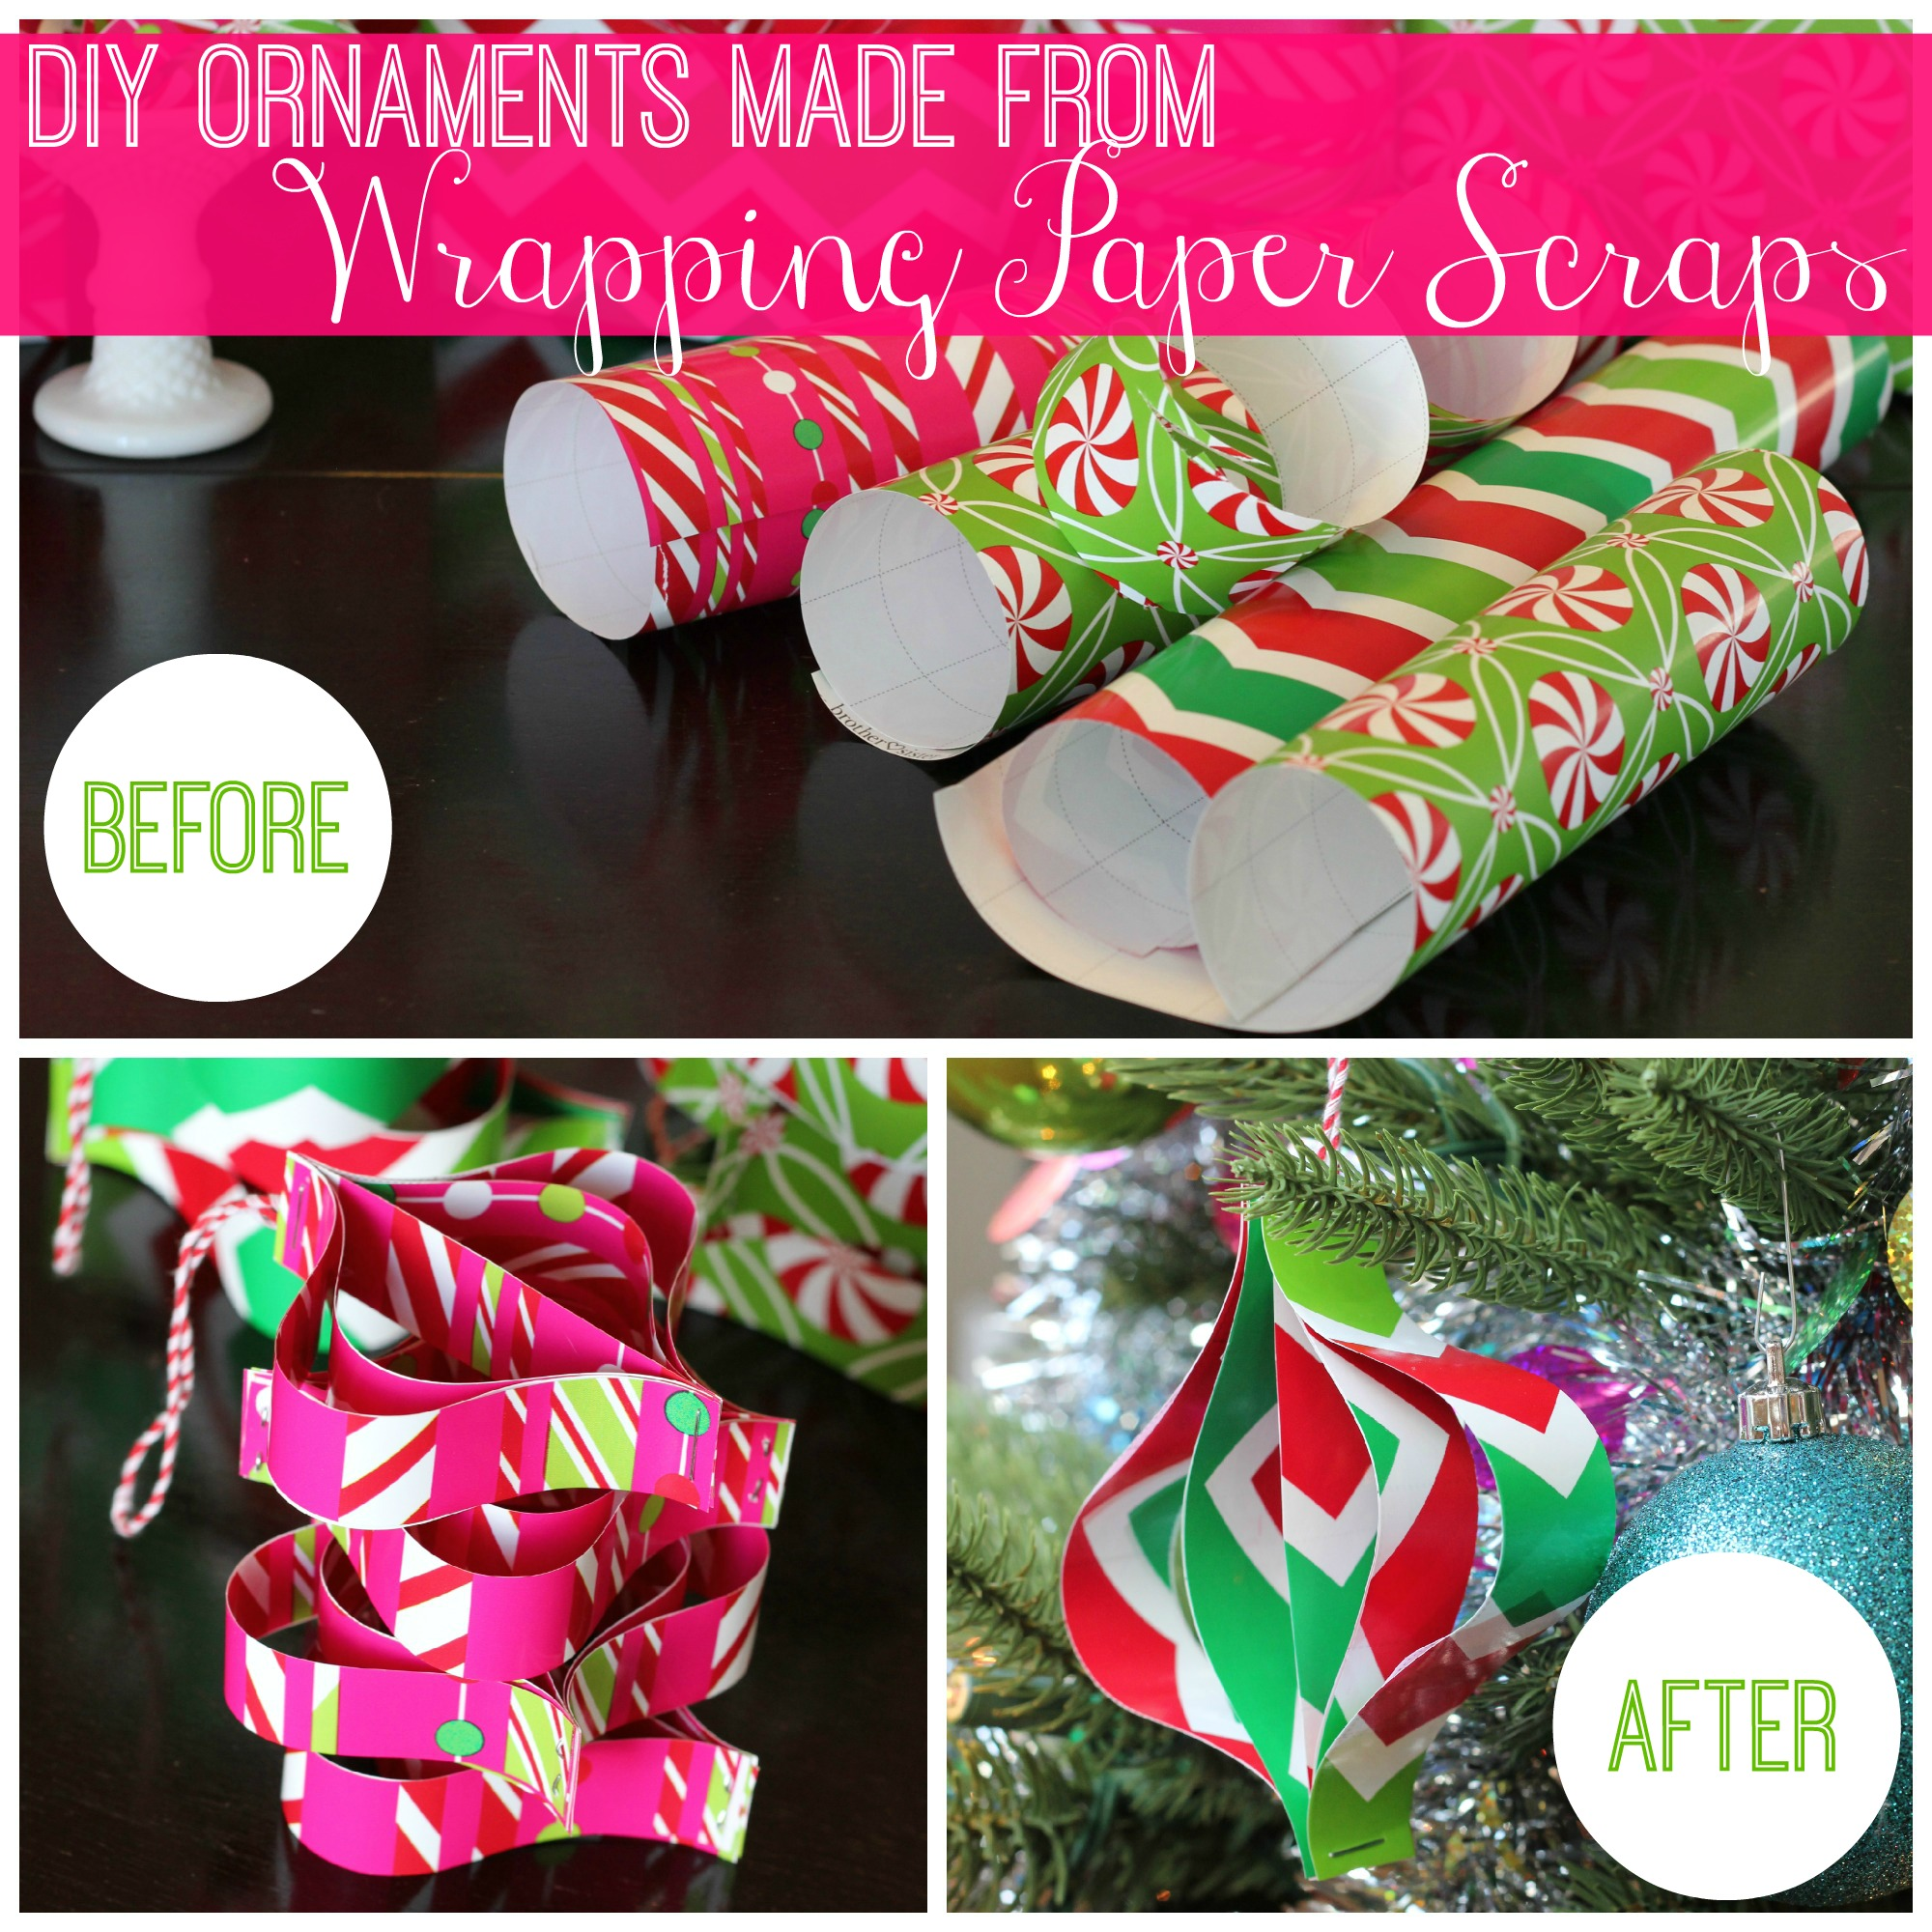 Diy Ornaments Made From Wrapping Paper Scraps All Things G D